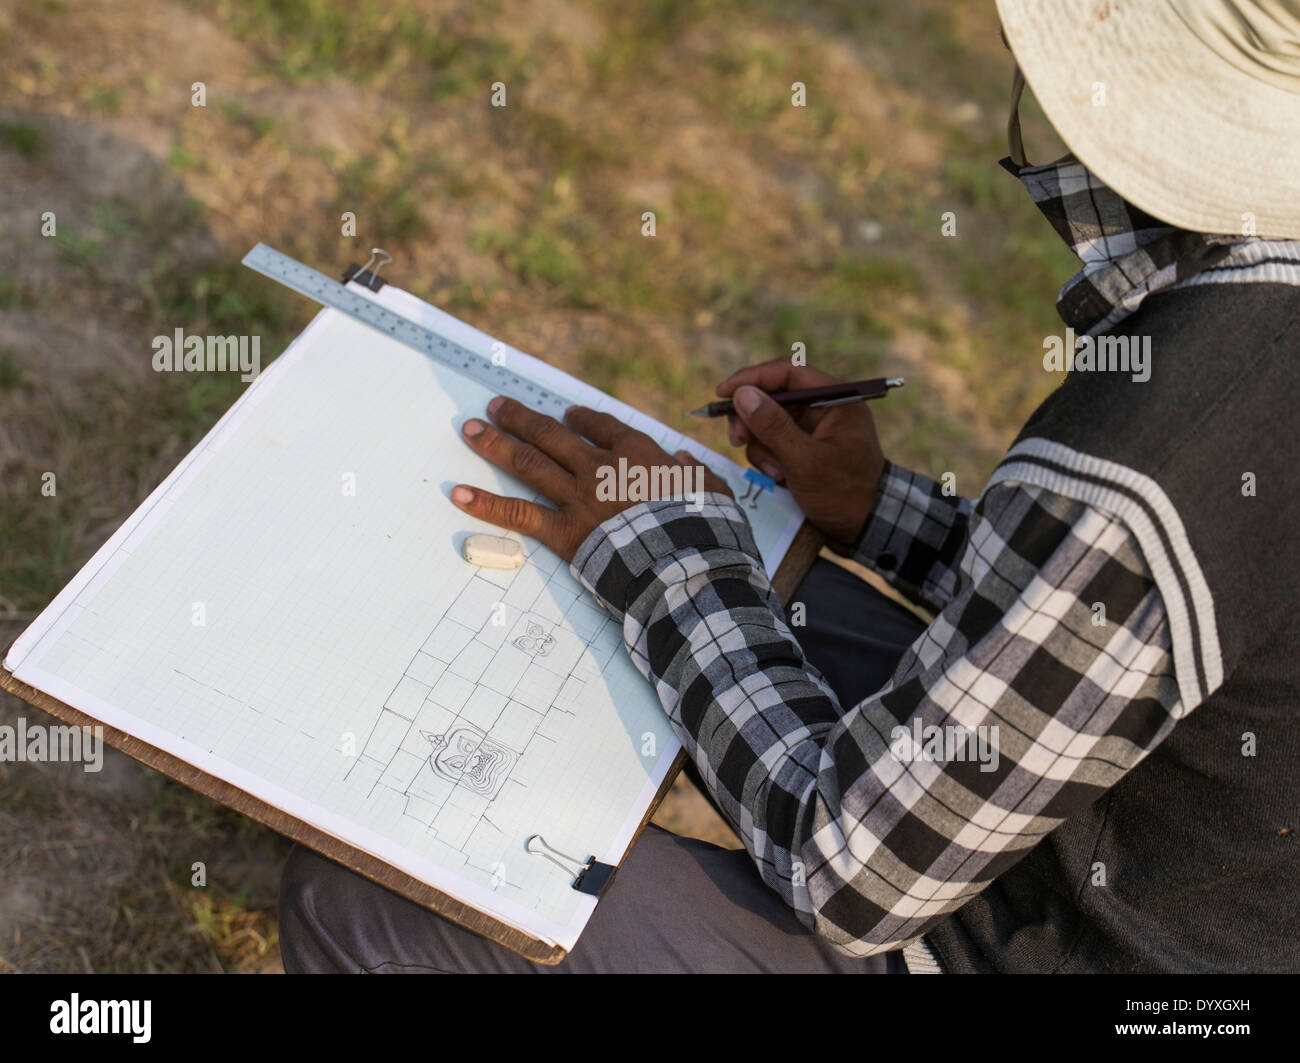 Member of a preservation team draws the current location of stones,Terrace of Elephants, Angkor Thom Temple, Siem Reap, Cambodia - Stock Image